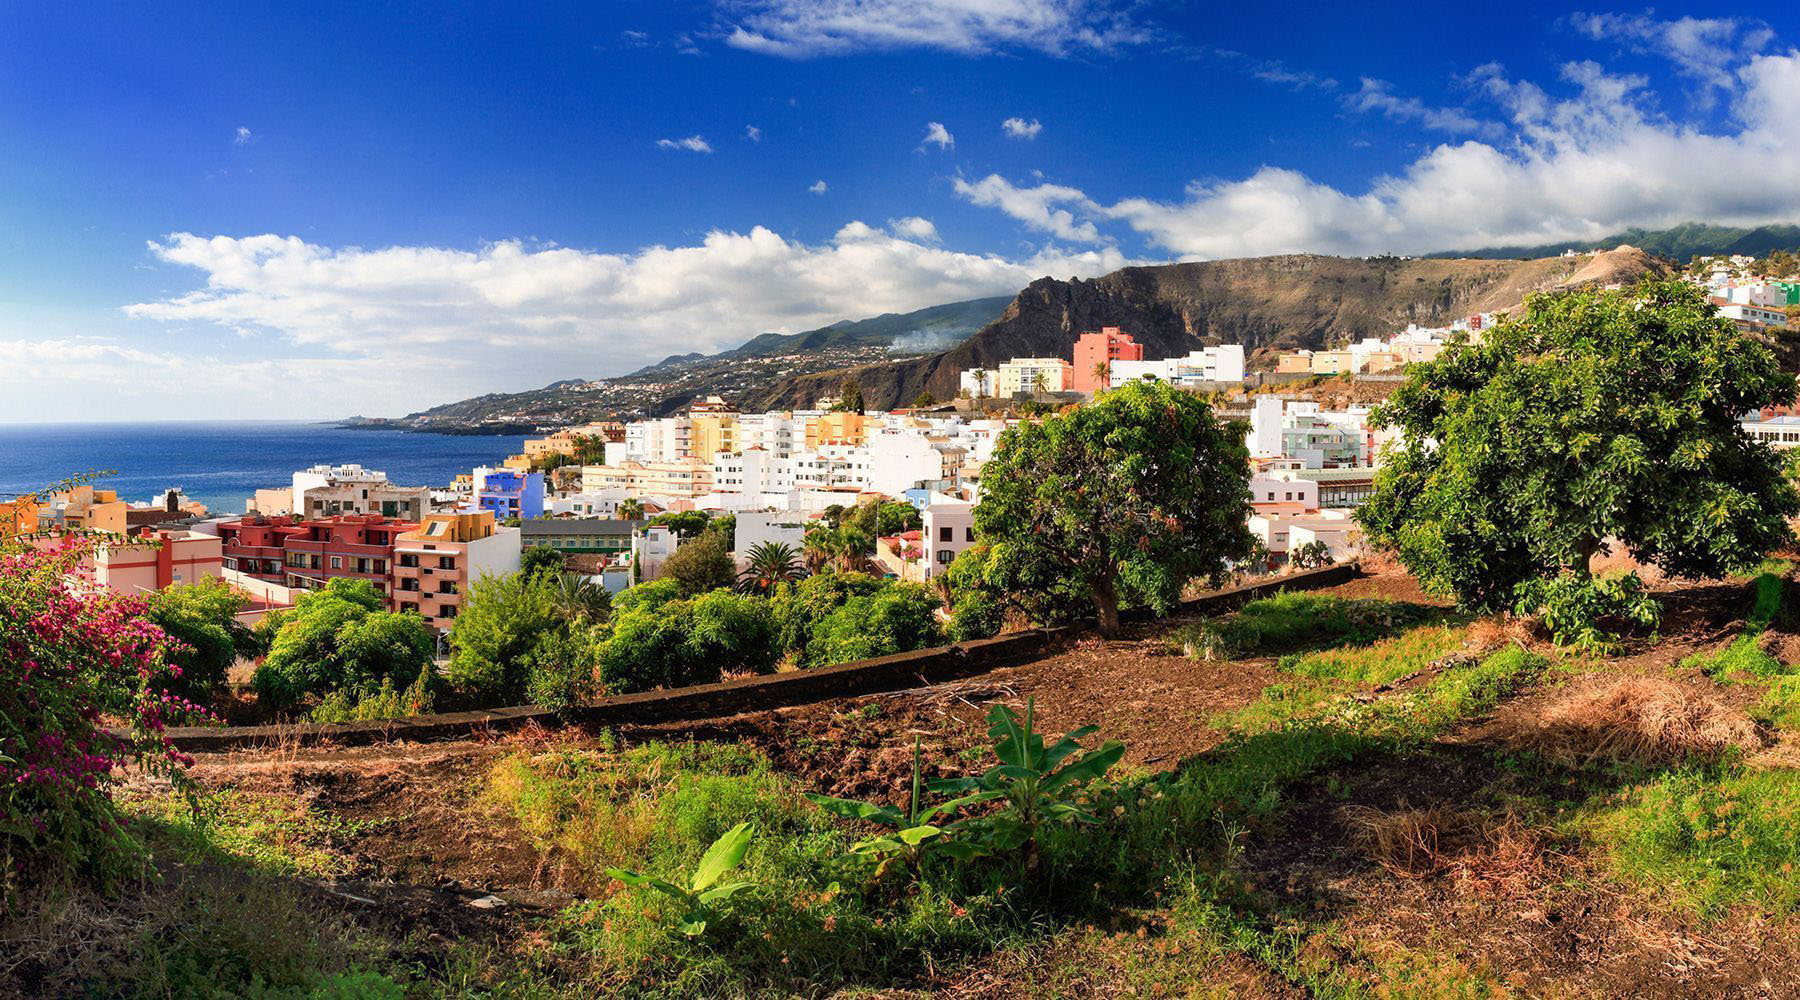 Luxury Voyages to Santa Cruz de la Palma, Canary Islands